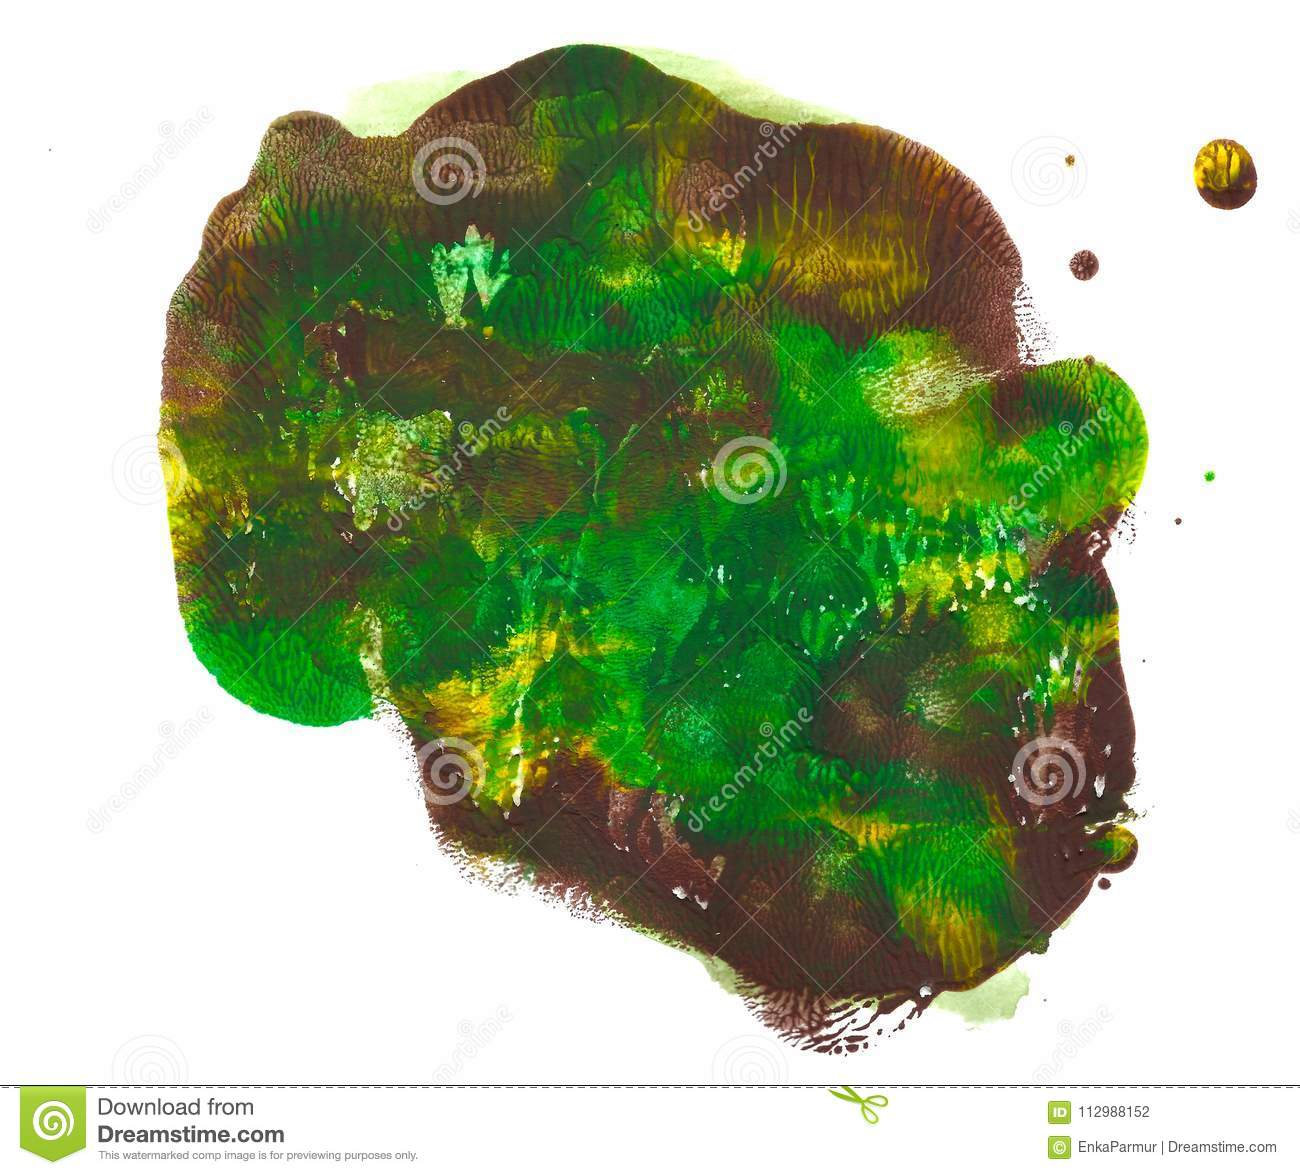 Abstract acrylic spot isolated on white background. Green, brown, yellow vibrant color. Monotyped hand drawn grunge